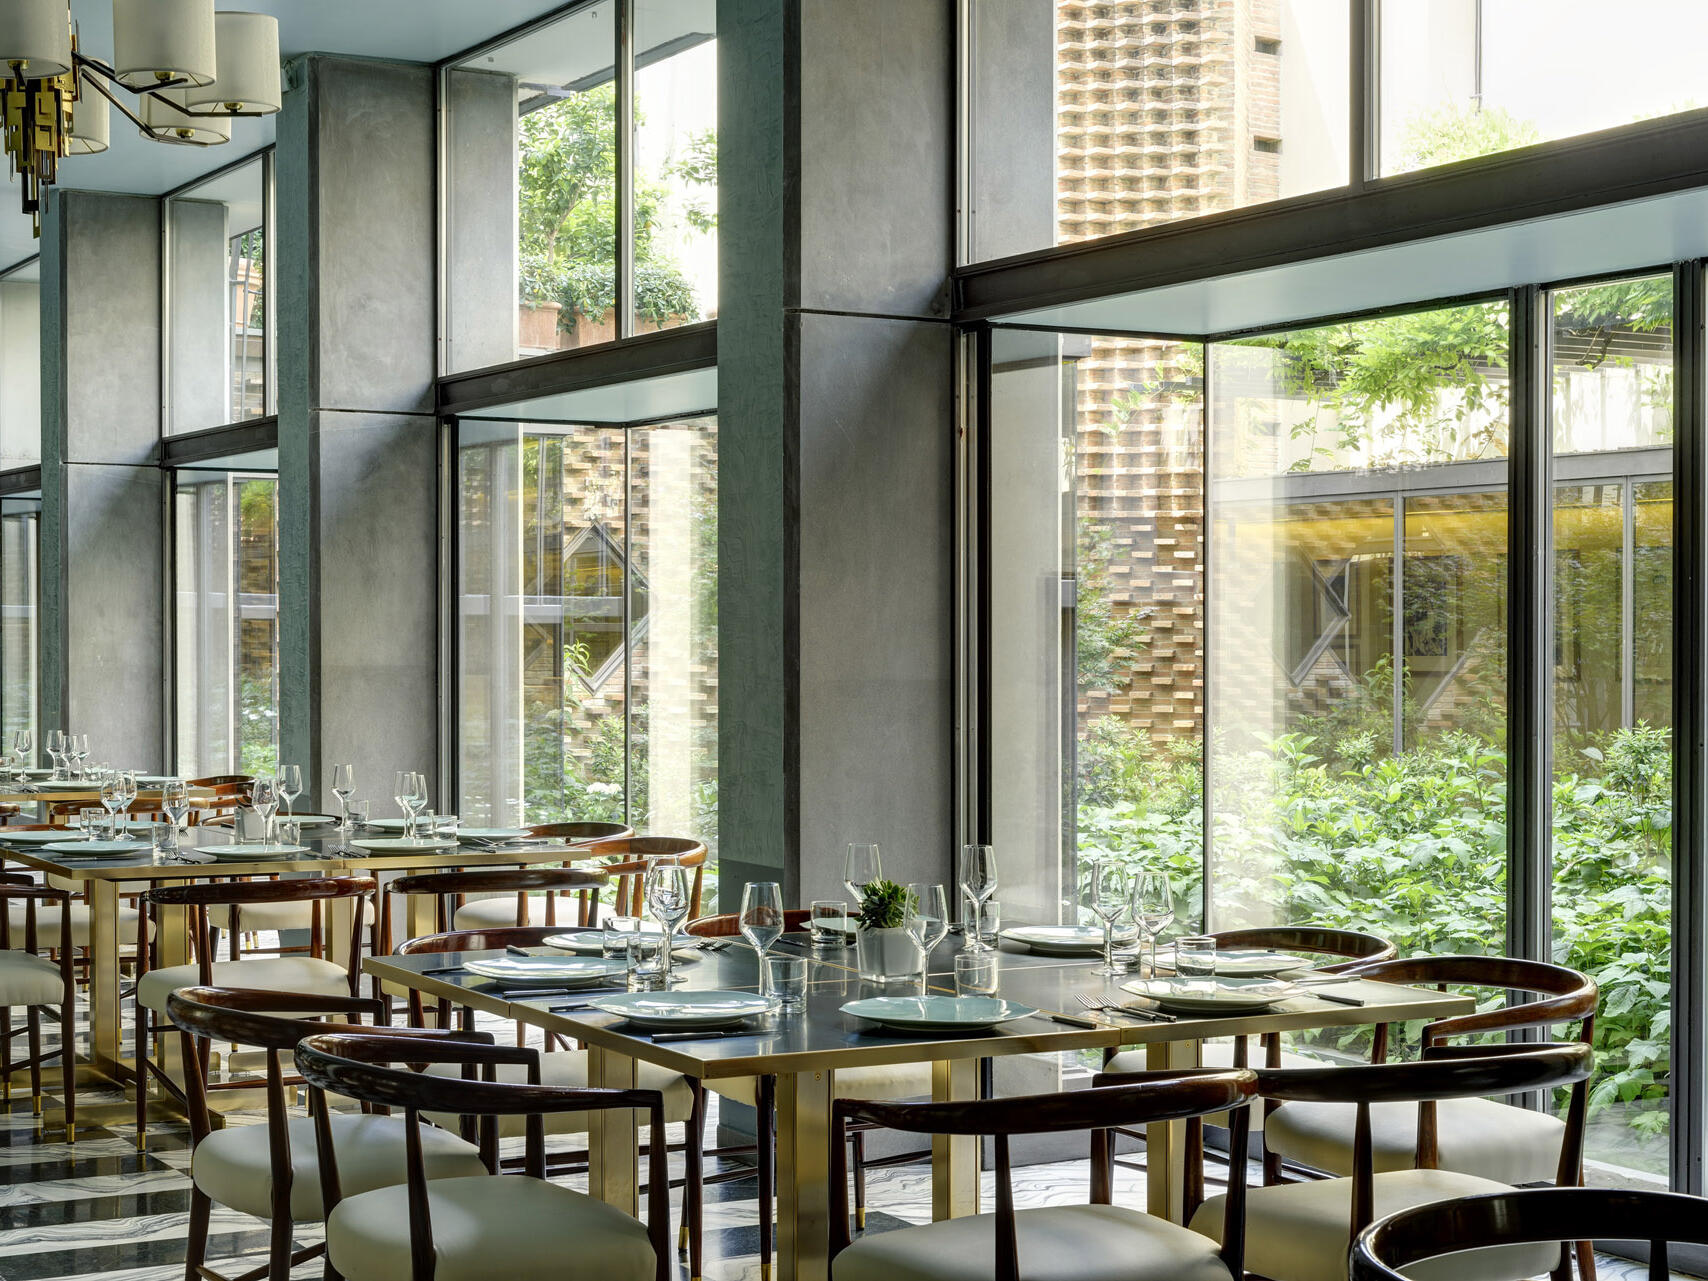 Dining Room with glass wall at Grand Hotel Minerva